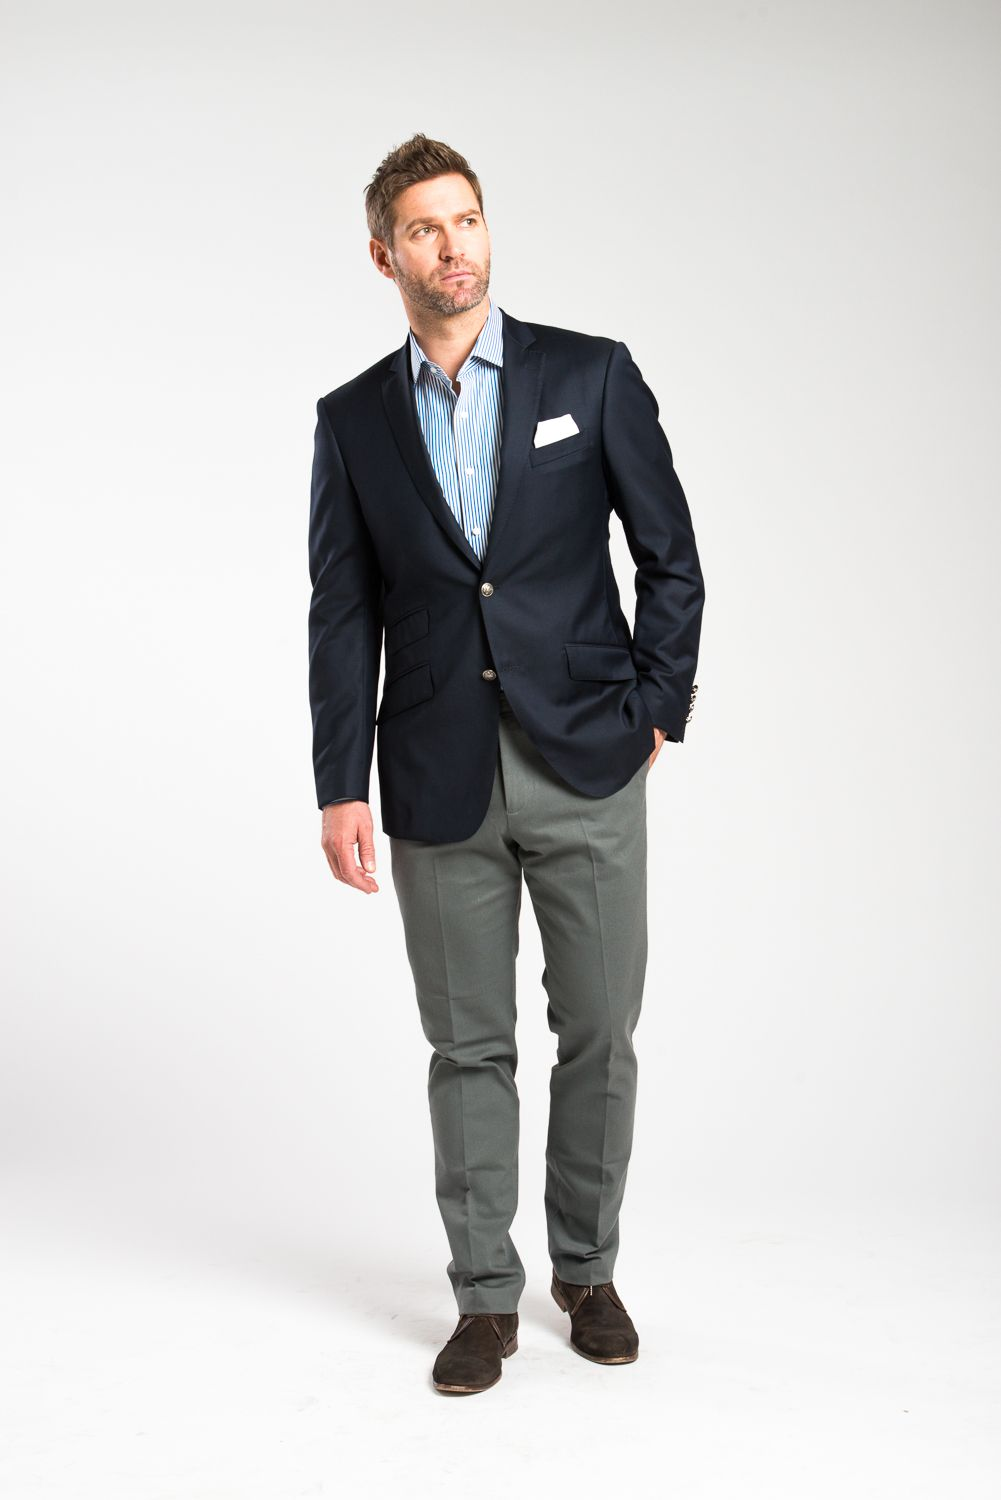 A Wilfred Newman Navy Blazer And Gray Twill Pants. | Wilfred Newman | Pinterest | Twill Pants